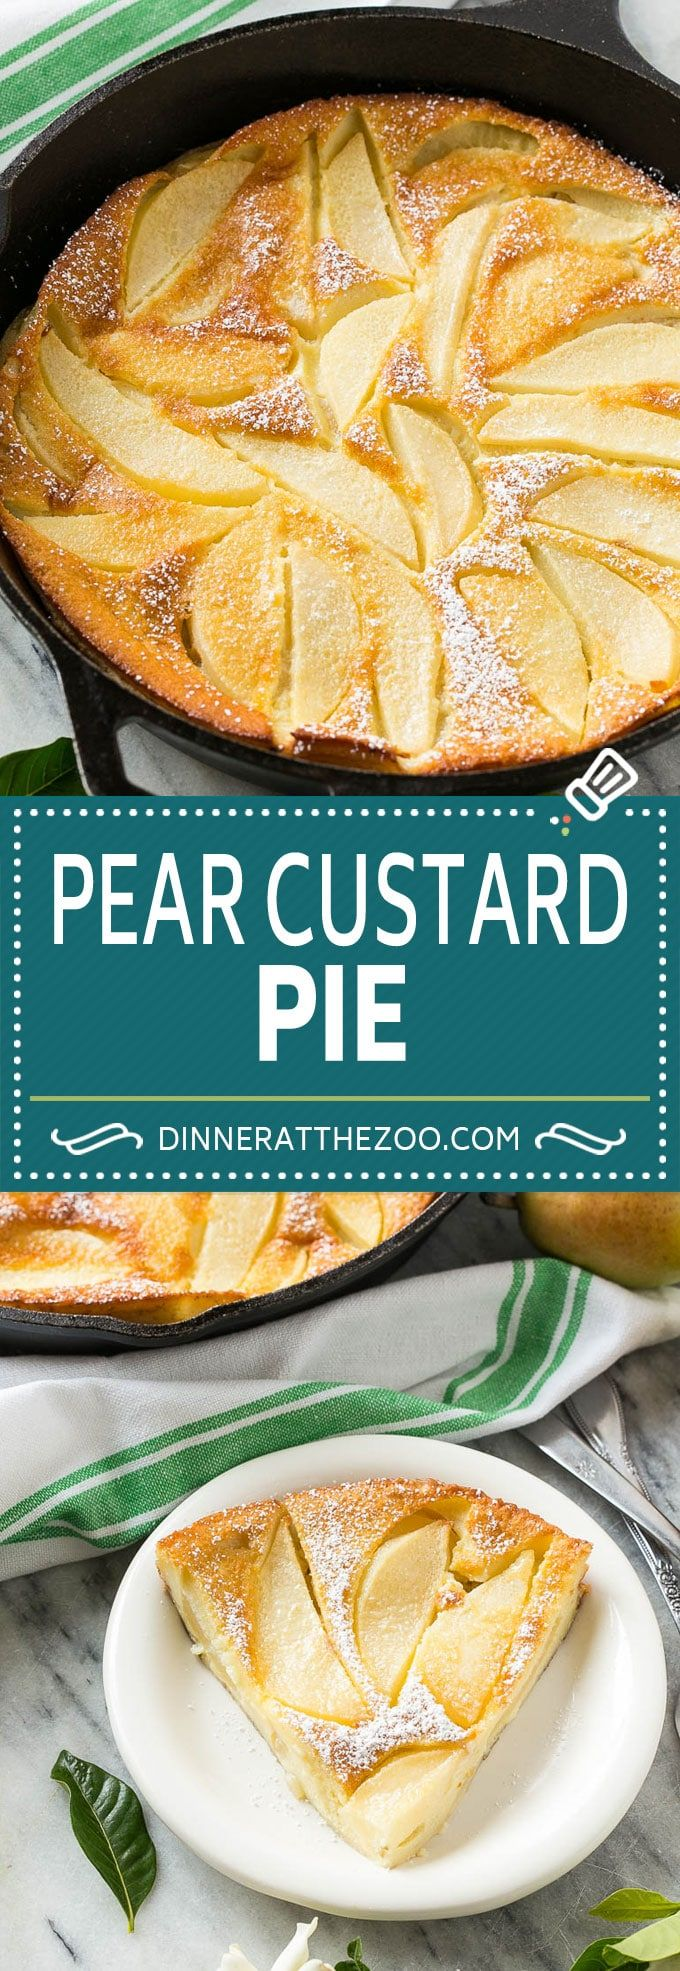 Pear Custard Pie - Dinner at the Zoo